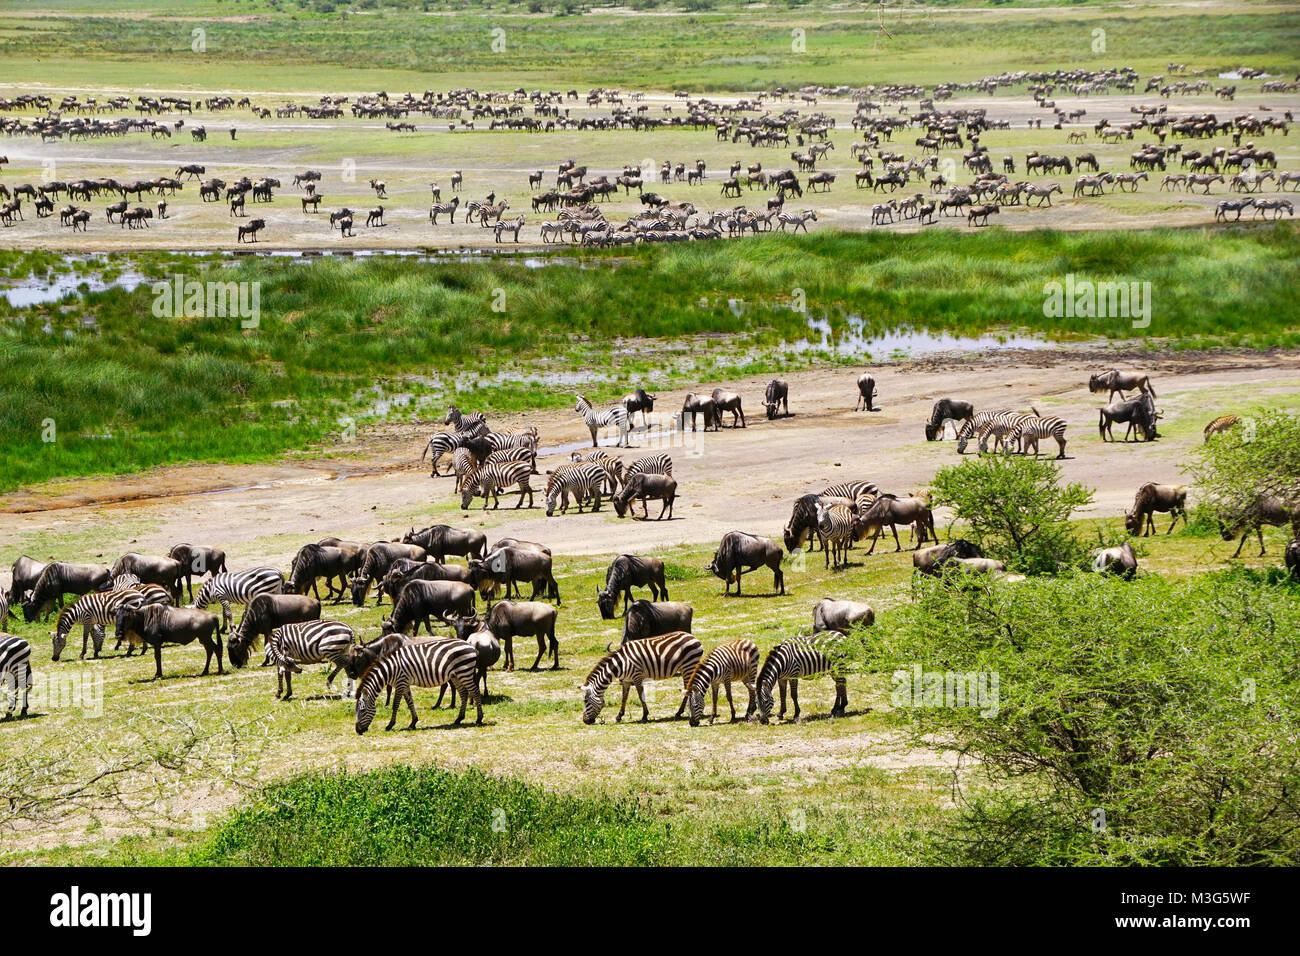 Herd of wildebeest and zebras gathering for great migration on Serengeti Plains of Tanzania. - Stock Image